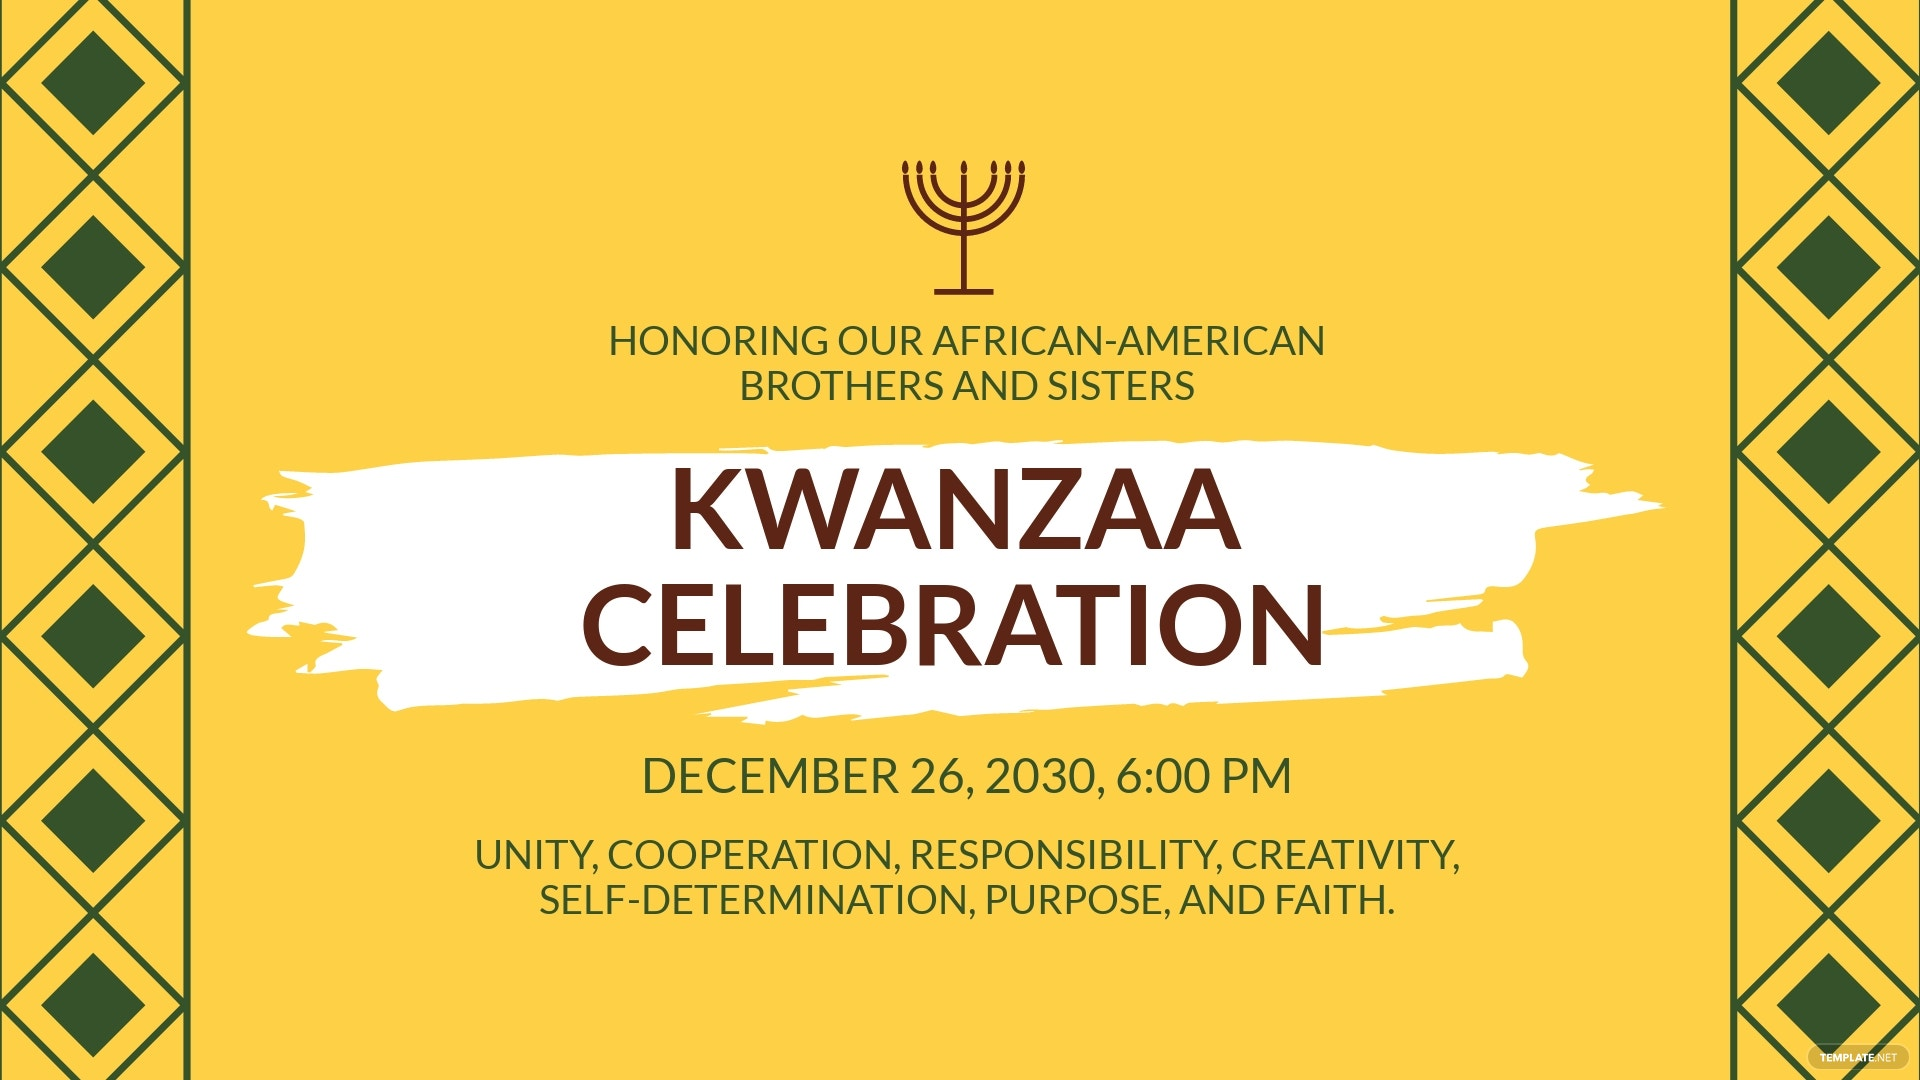 Kwanzaa Facebook Event Cover